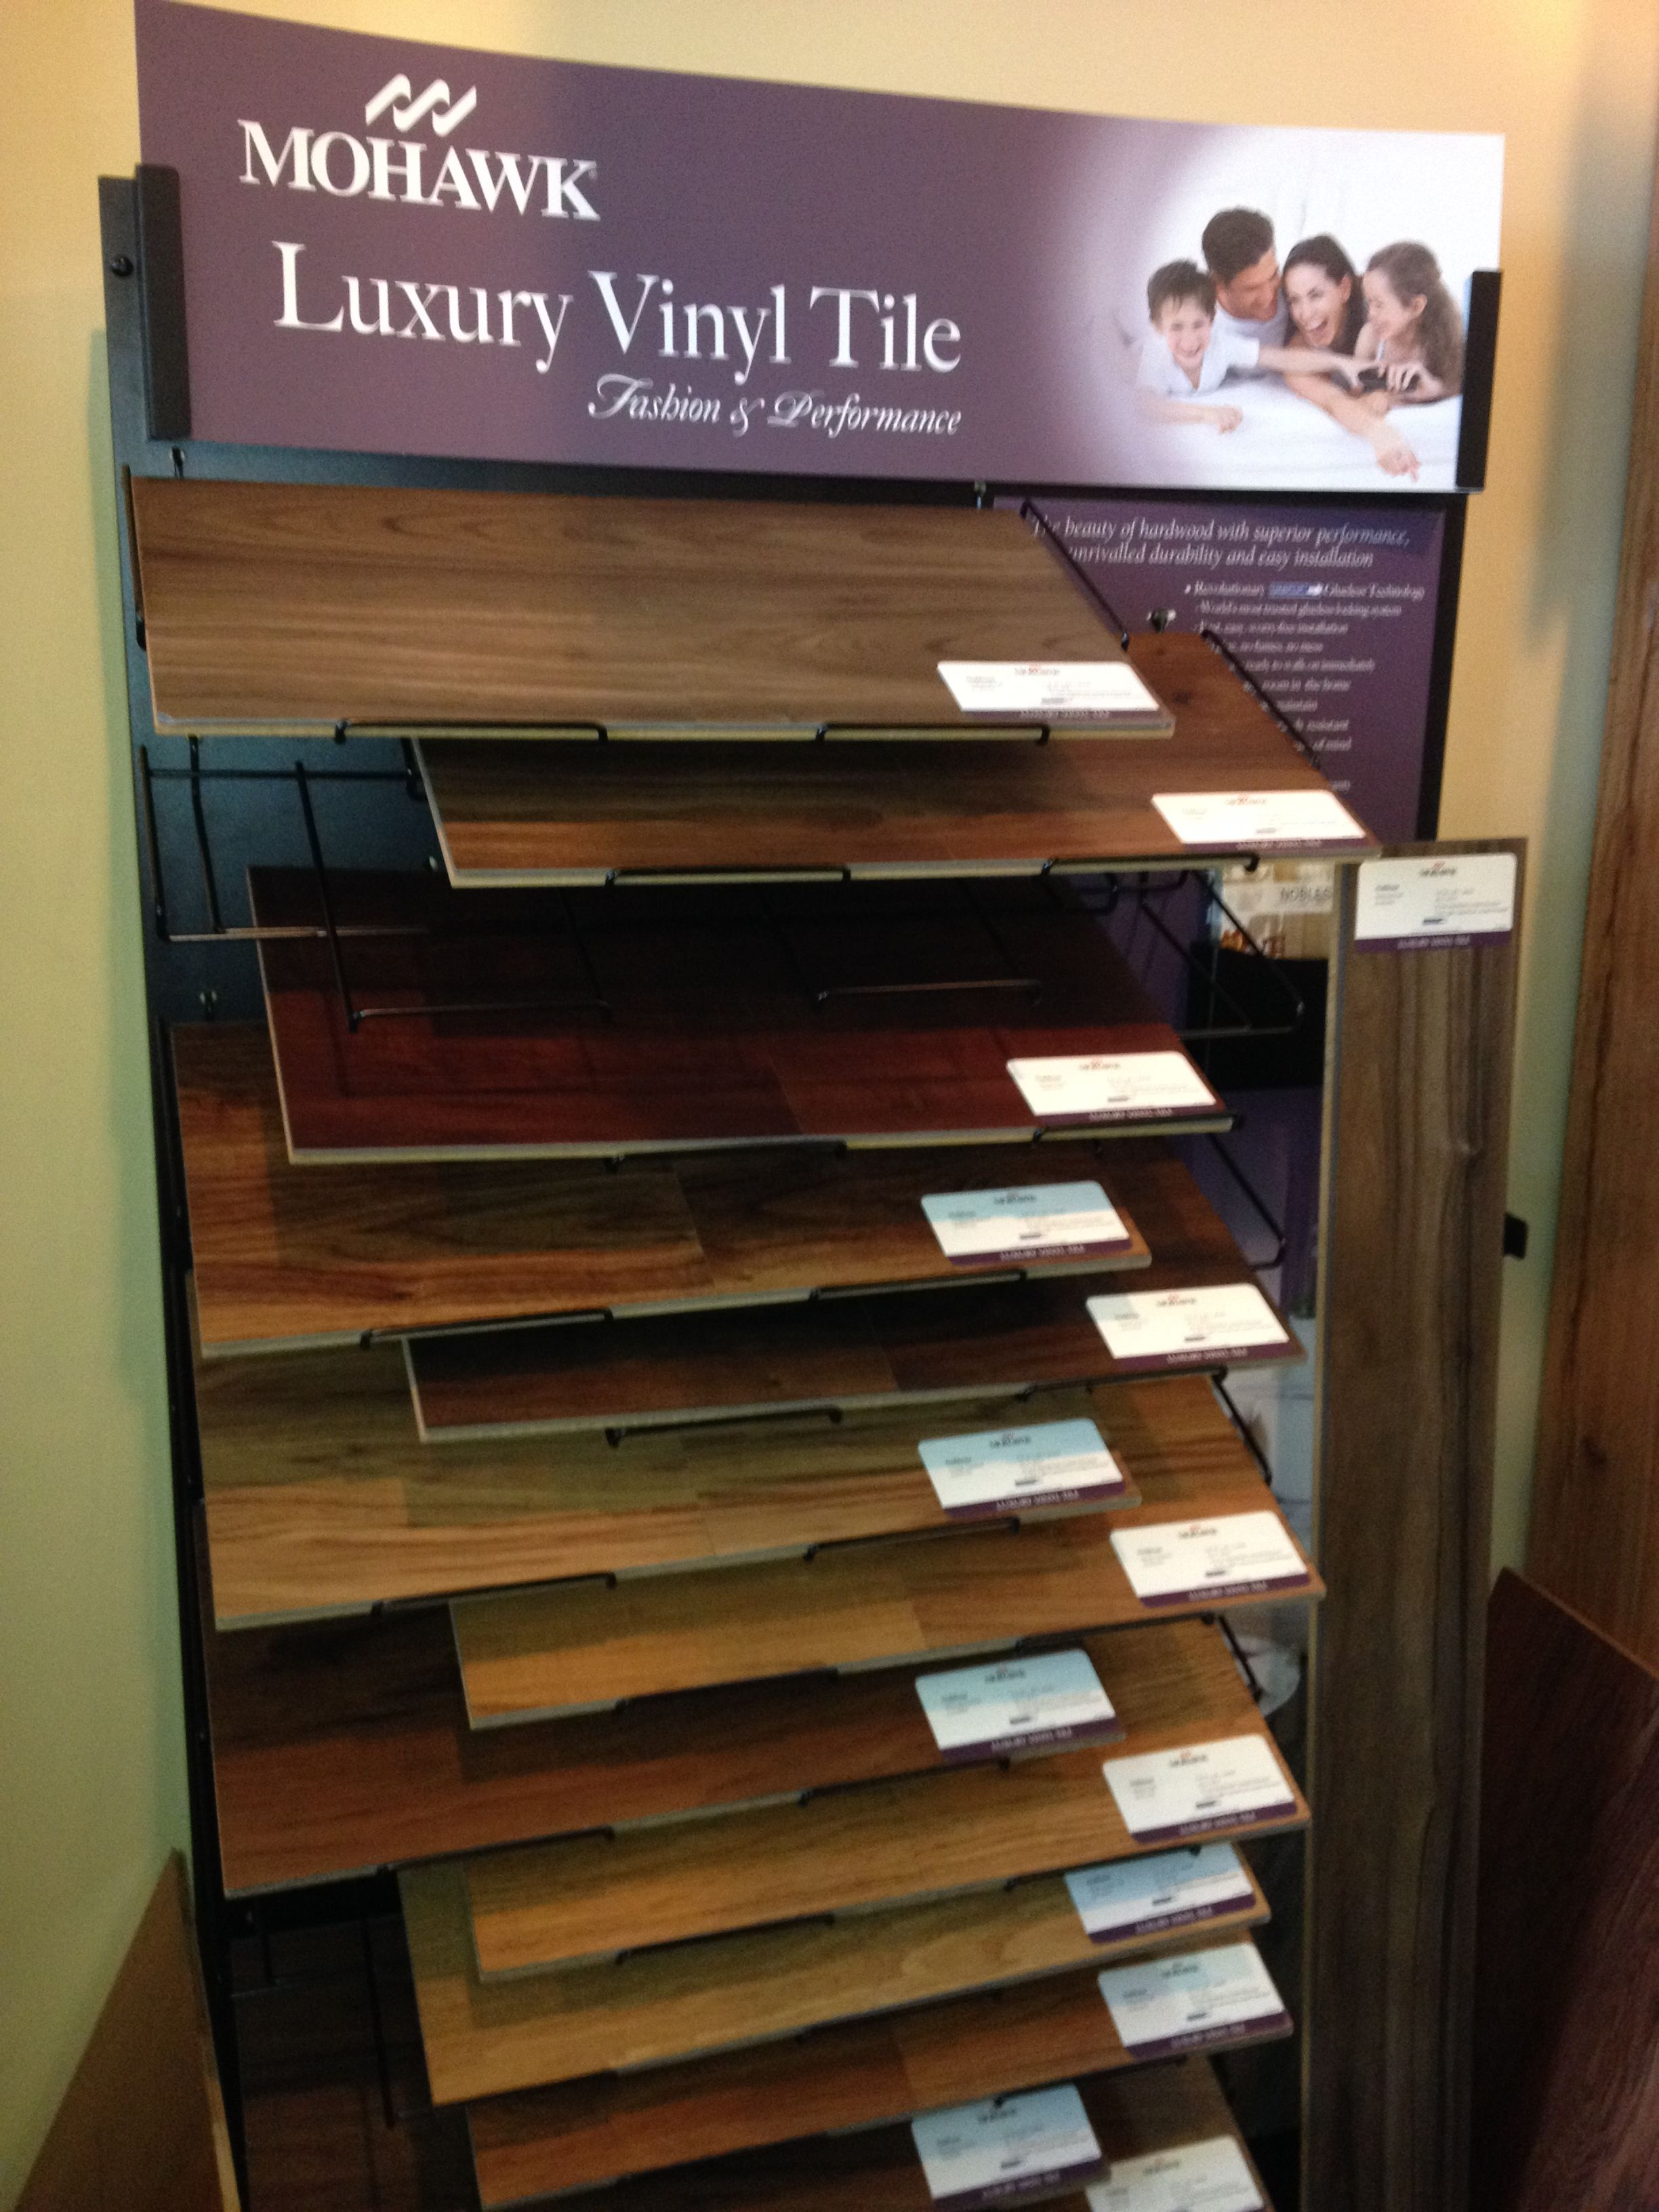 Mohawk Lvt Luxury Vinyl Tile In The Newest And Most Popular Resilient Flooring